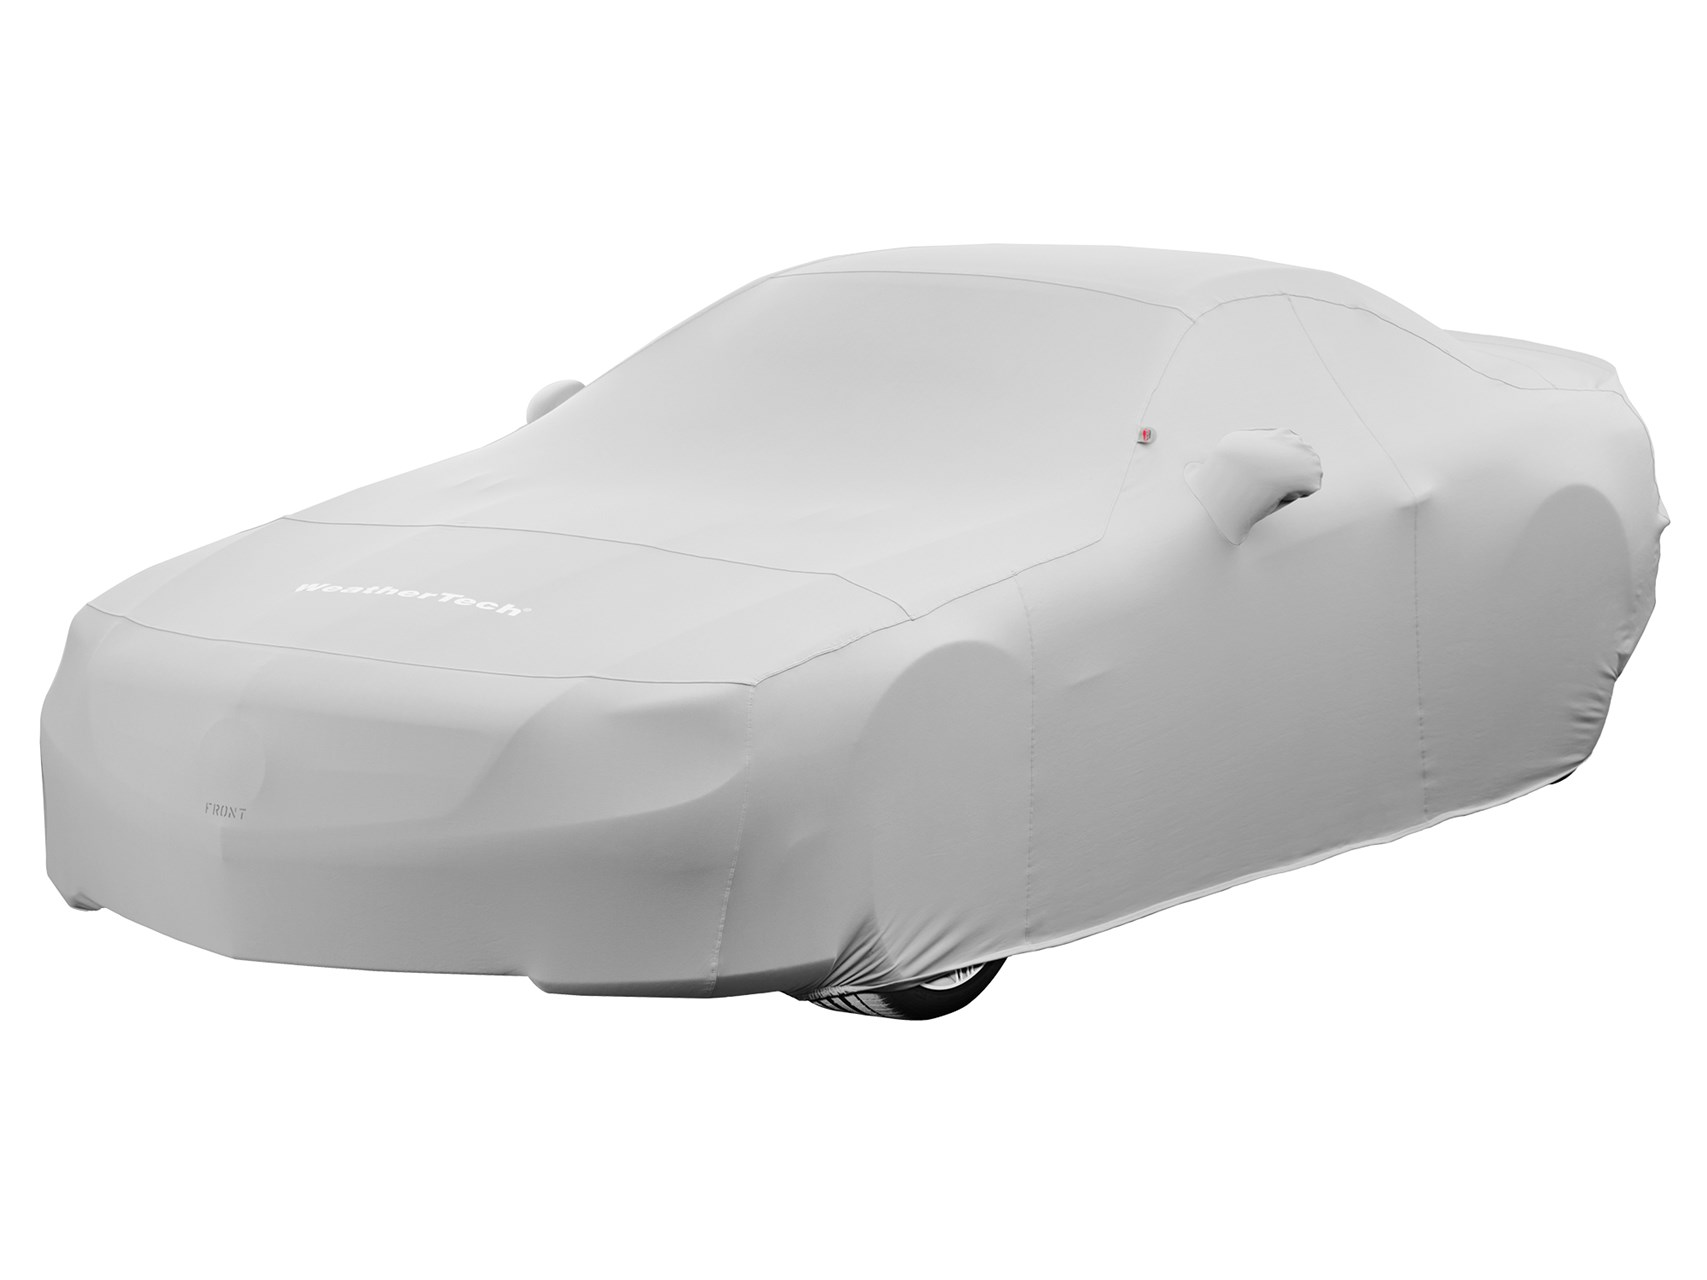 2016-2018 Camaro Form-Fit Indoor Car Cover, Coupe or Convertible Models